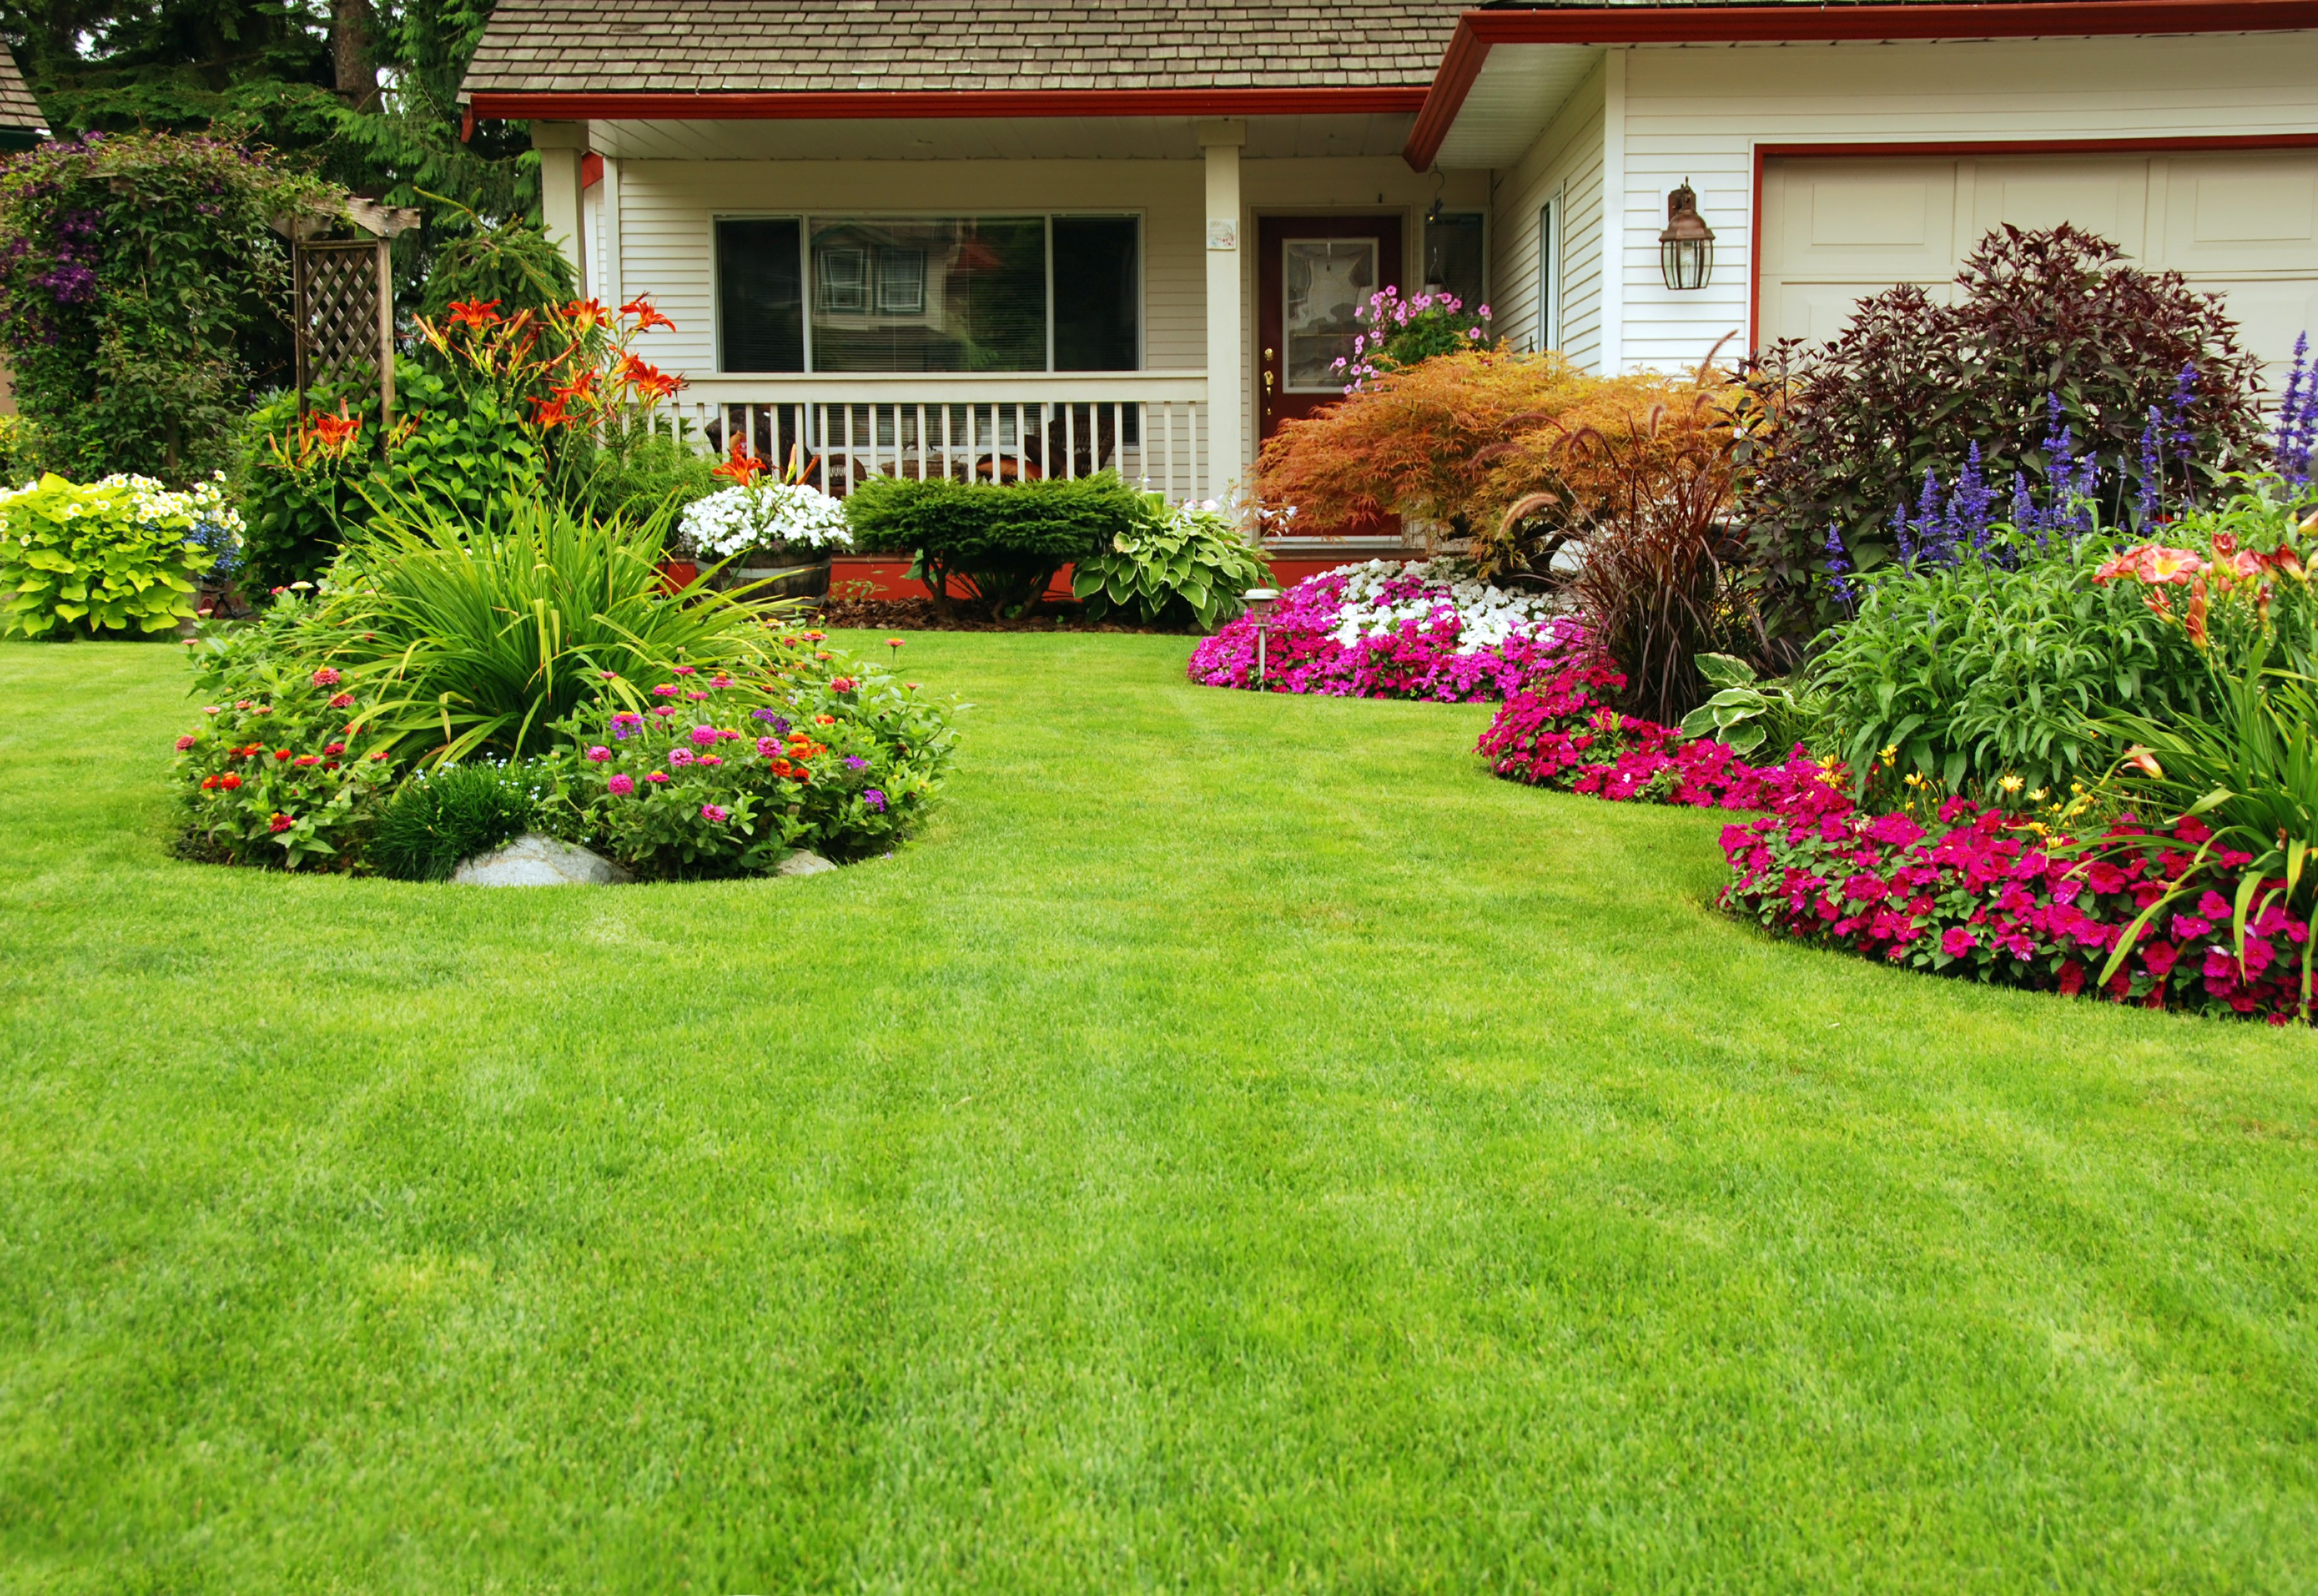 50 Best Backyard Landscaping Ideas And Designs In 2019 with regard to 12 Awesome Tricks of How to Make Landscaping Ideas For Backyards